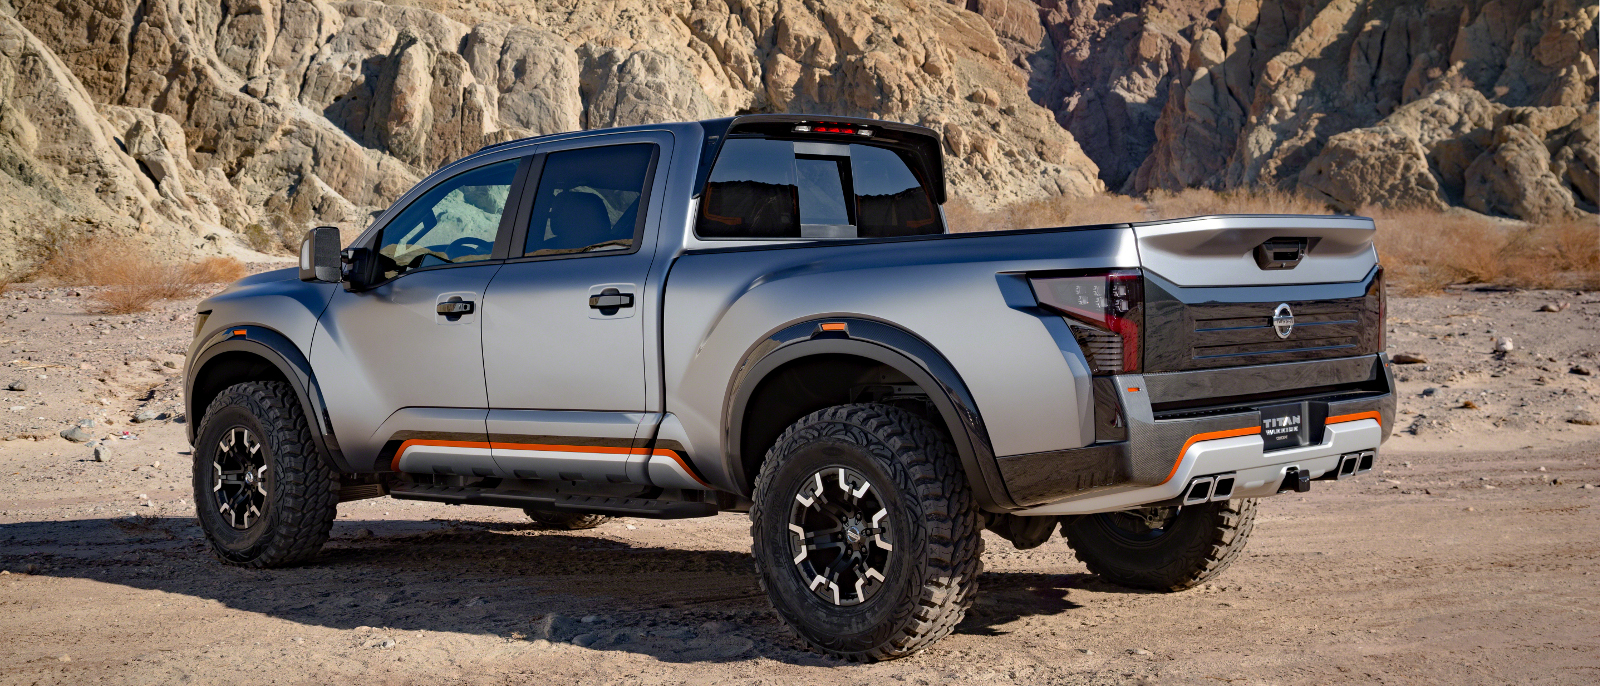 Make Way For The Monstrous 2016 Nissan Titan Warrior